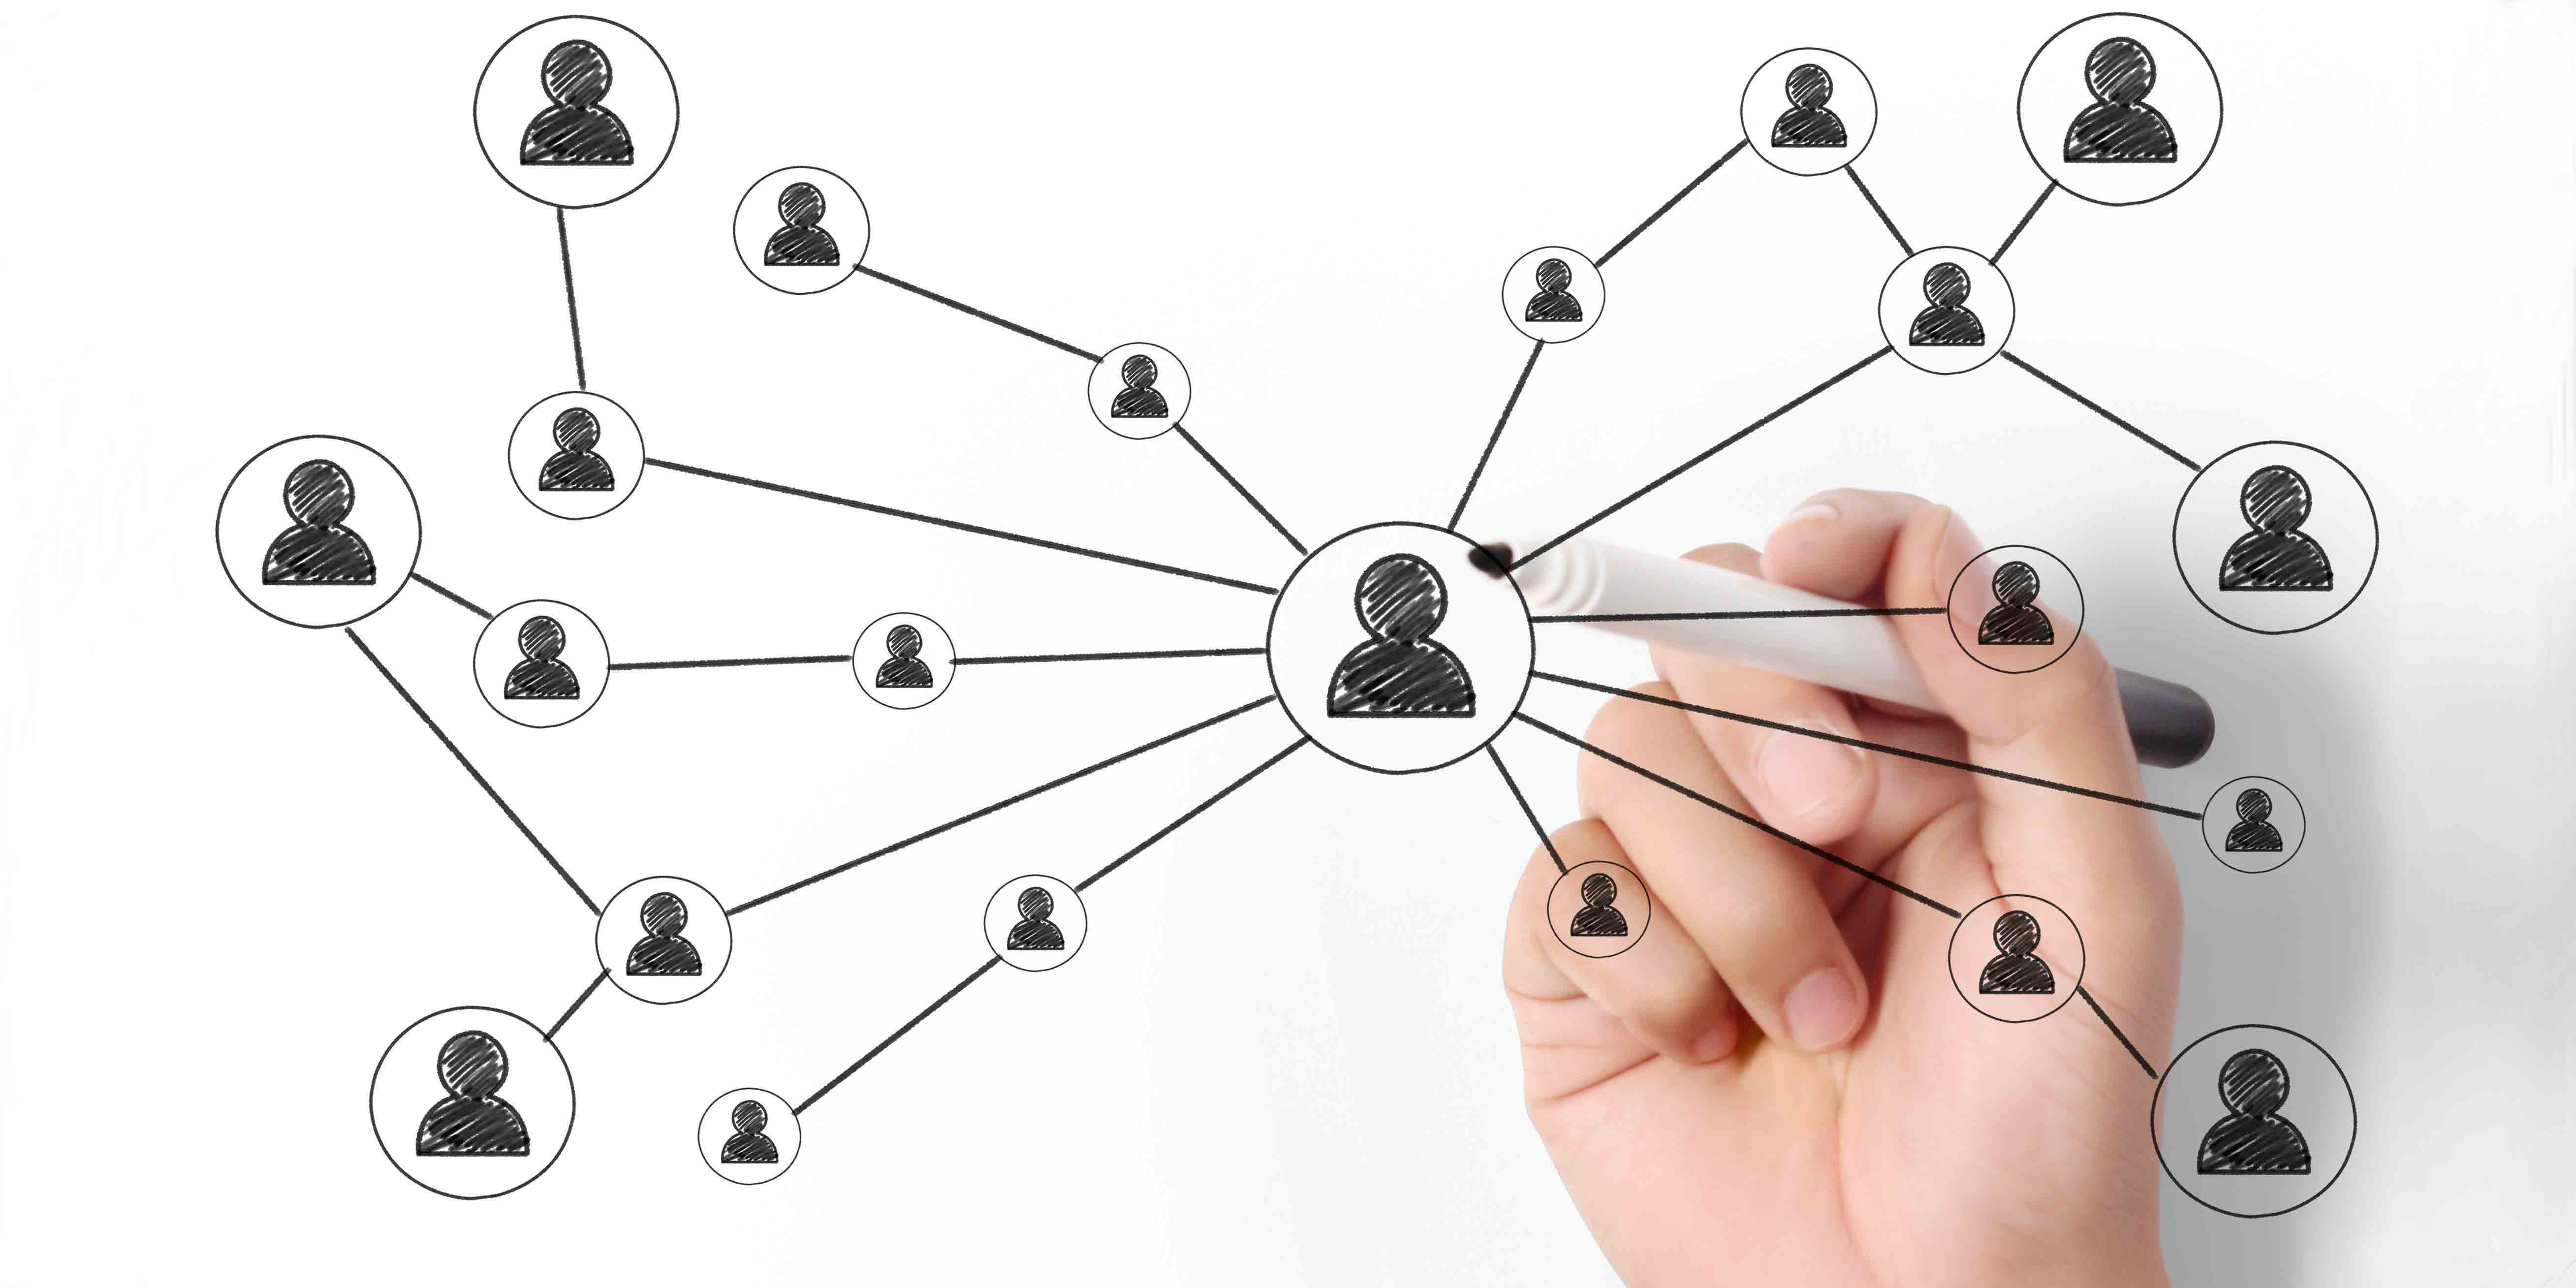 Boost your engagement network and skills with a community of practice